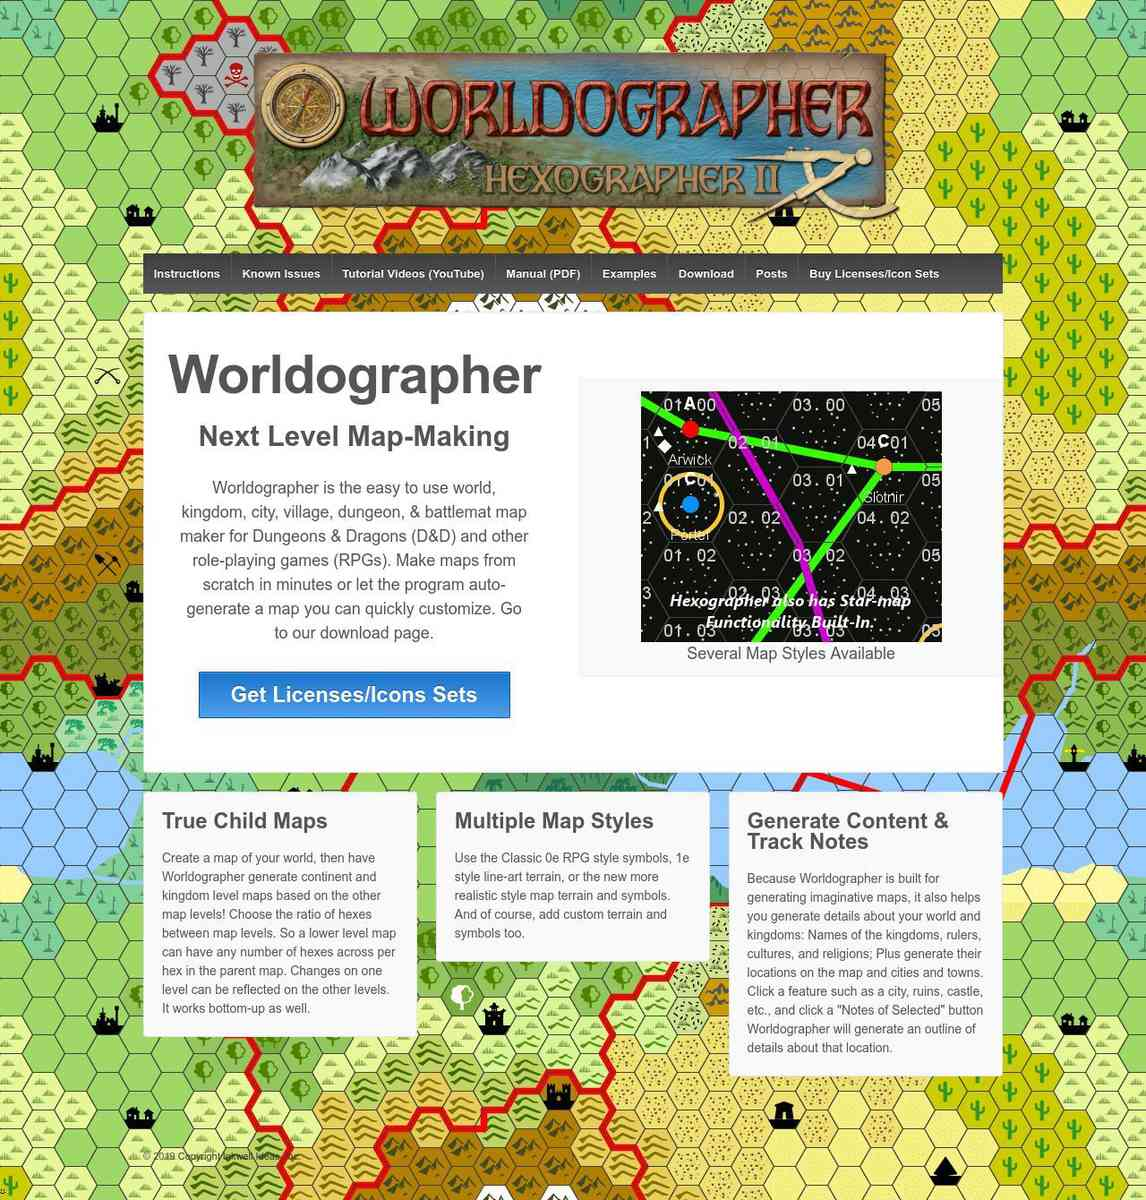 $$$ Mapper - HexographerII - Worldographer